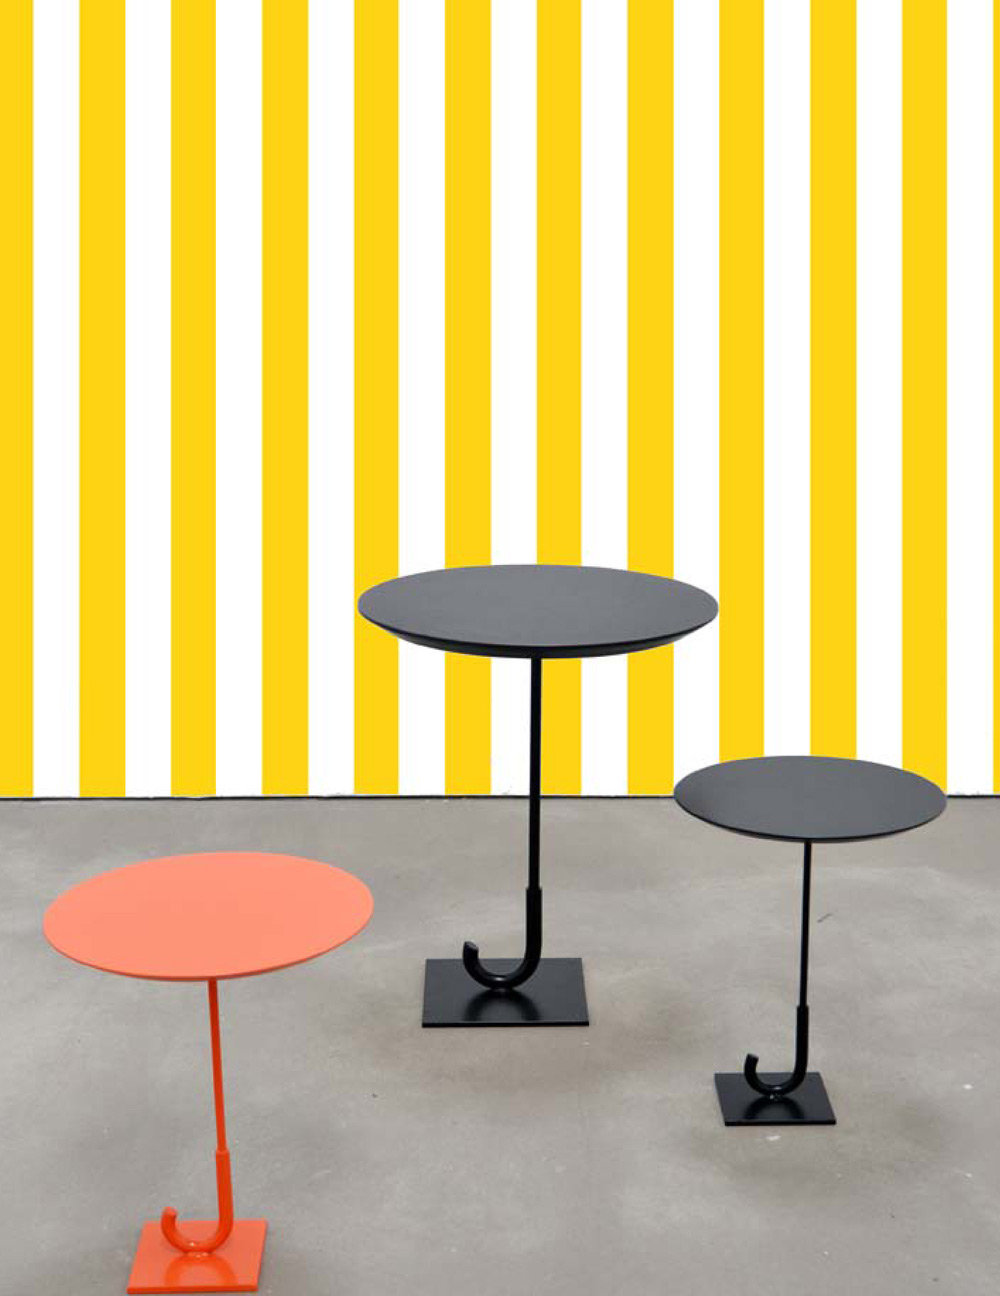 awesome-design-ideas-Parapluie-table-Rakso-Naibaf-4